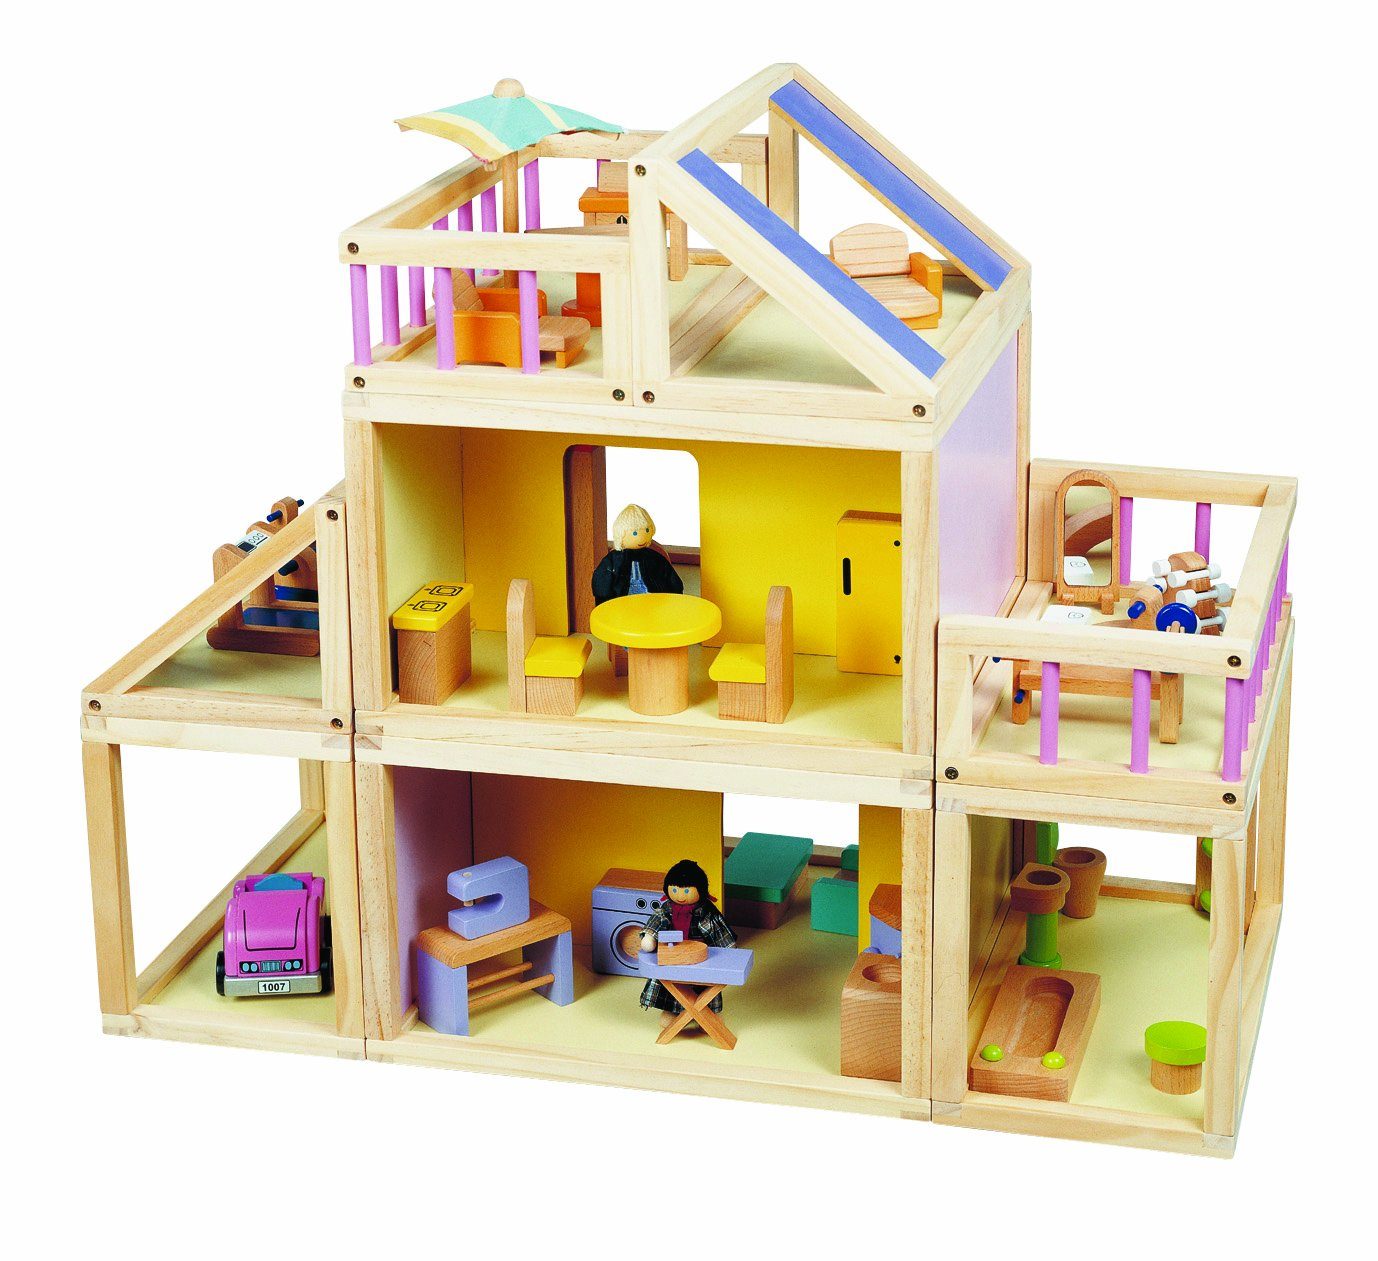 amazoncom maxim designed by you dollhouse furnished wooden modular doll house furniture doll people toys games - Wooden Dollhouses Designs